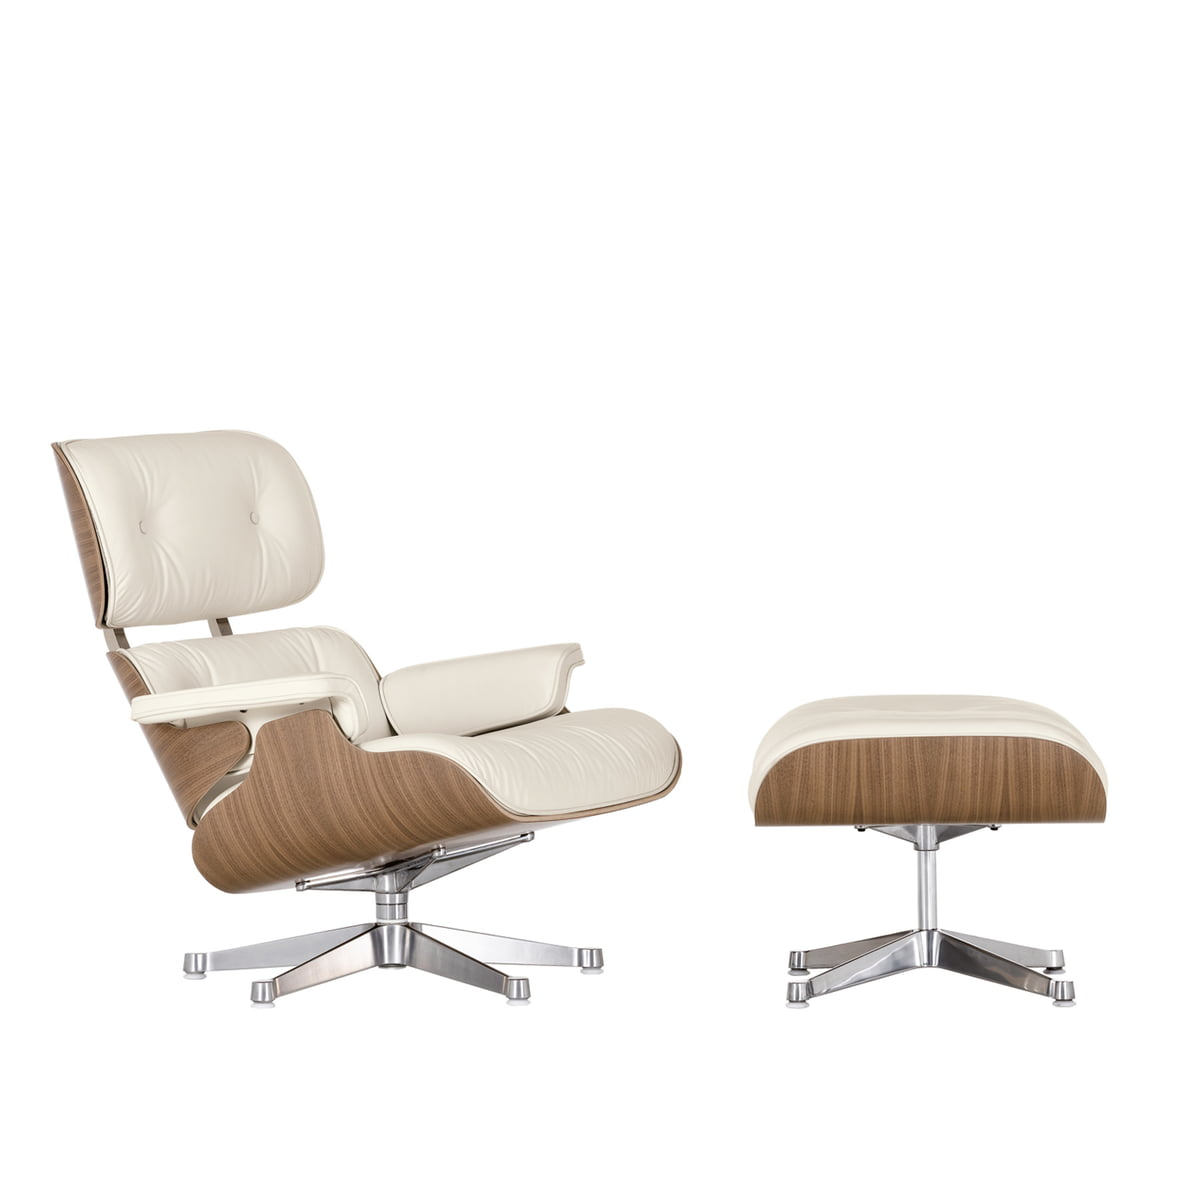 Vitra lounge chair amp ottoman white version von charles amp ray eames vitra eames lounge download